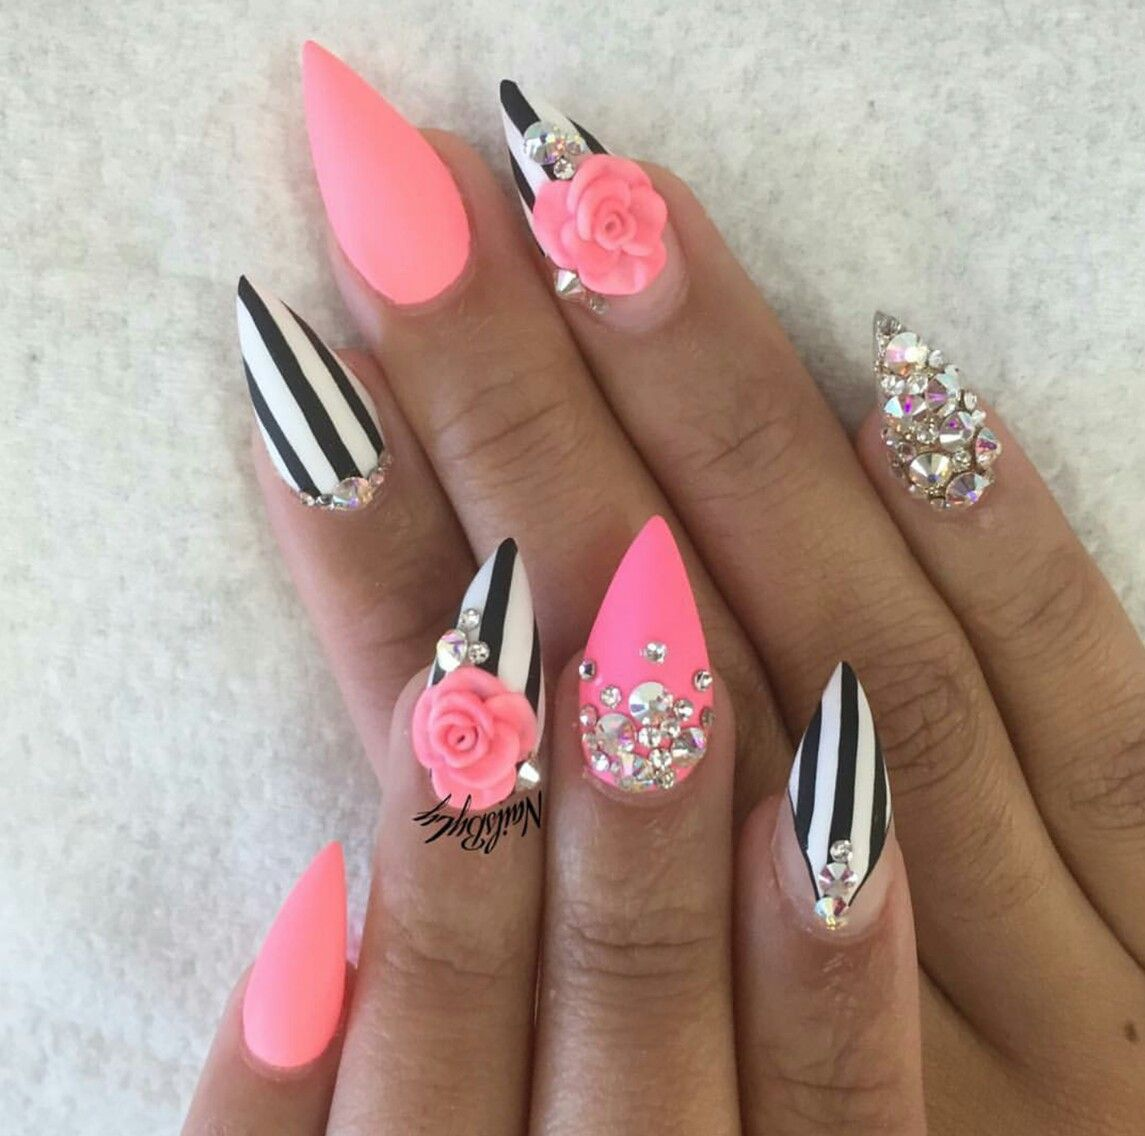 Pin by Маги Диновска on Nails | Pinterest | Nail nail, Manicure and ...